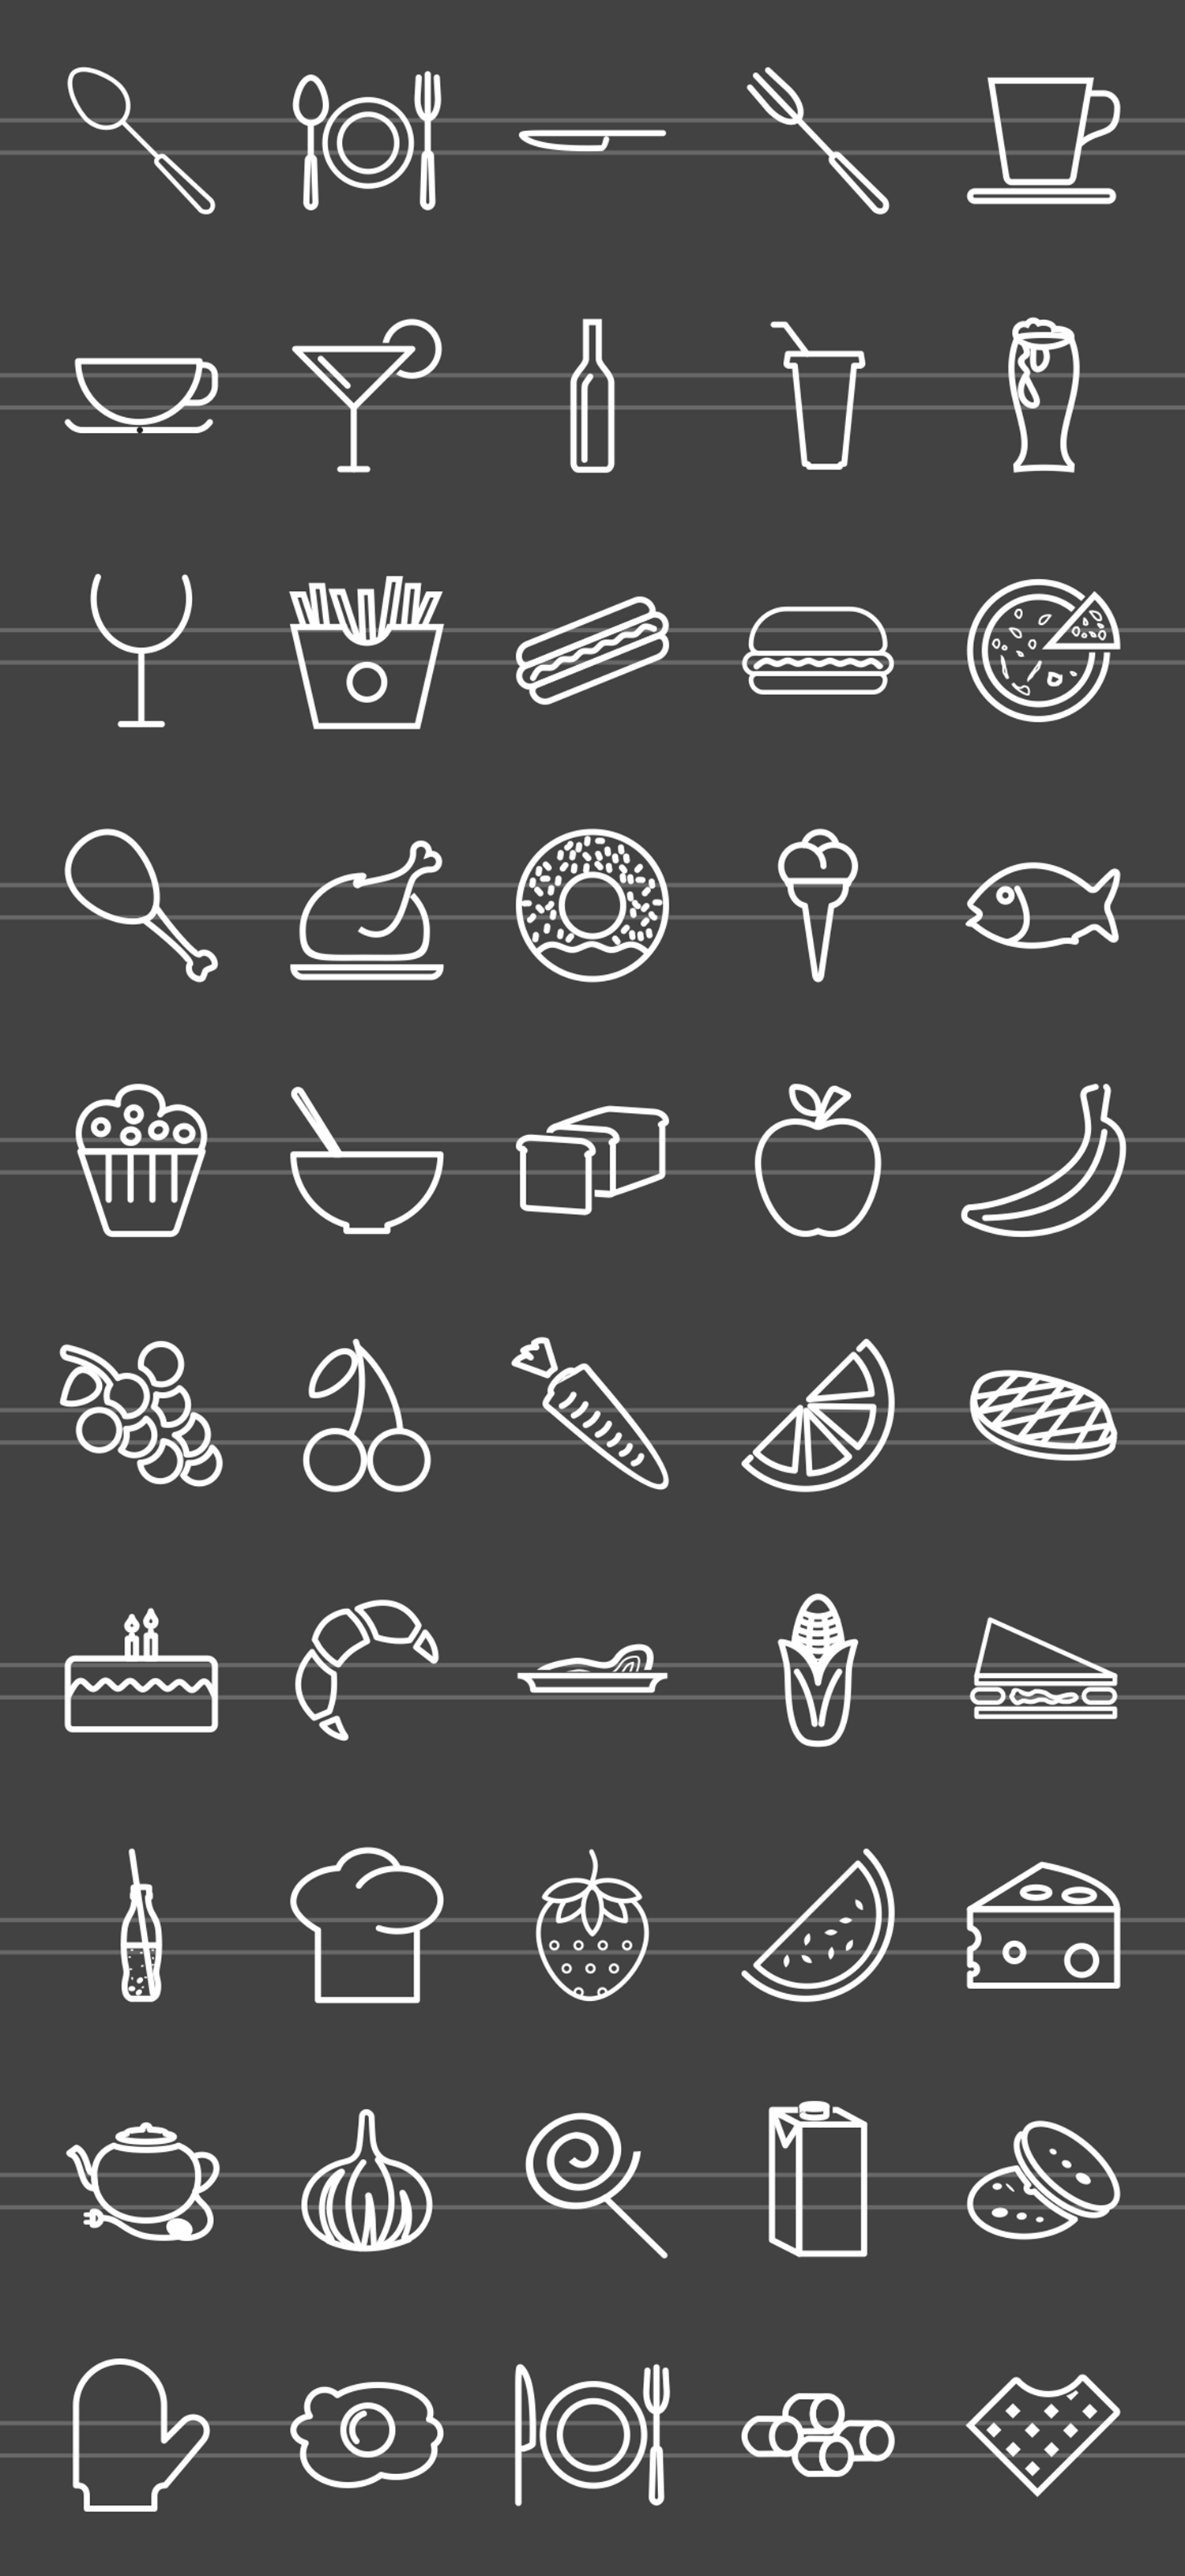 50 Food & Drinks Line Inverted Icons example image 2